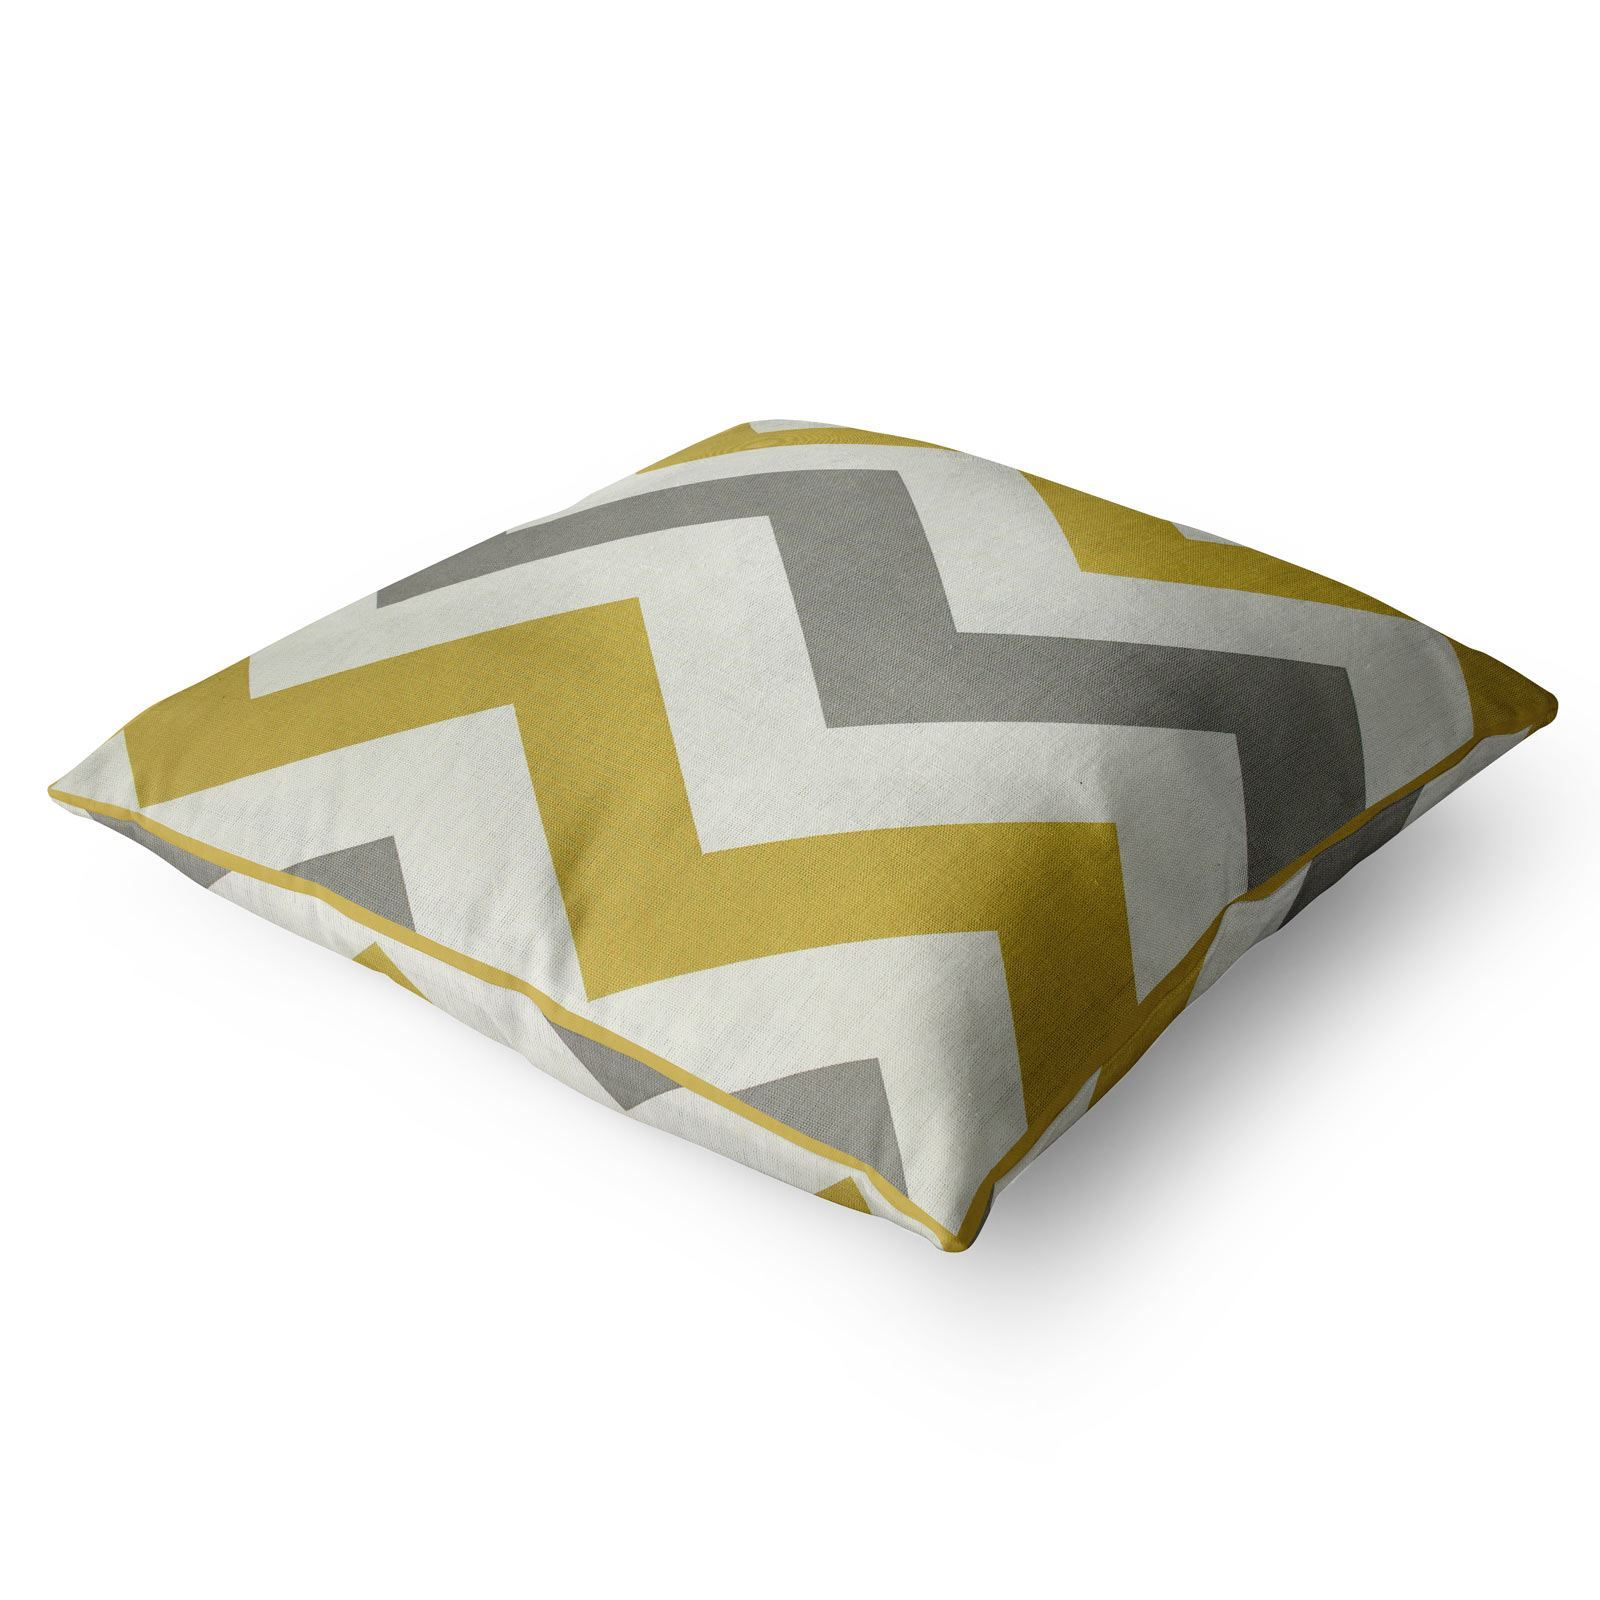 Grey-Ochre-Mustard-Cushion-Cover-Collection-17-034-18-034-Covers-Filled-Cushions thumbnail 51